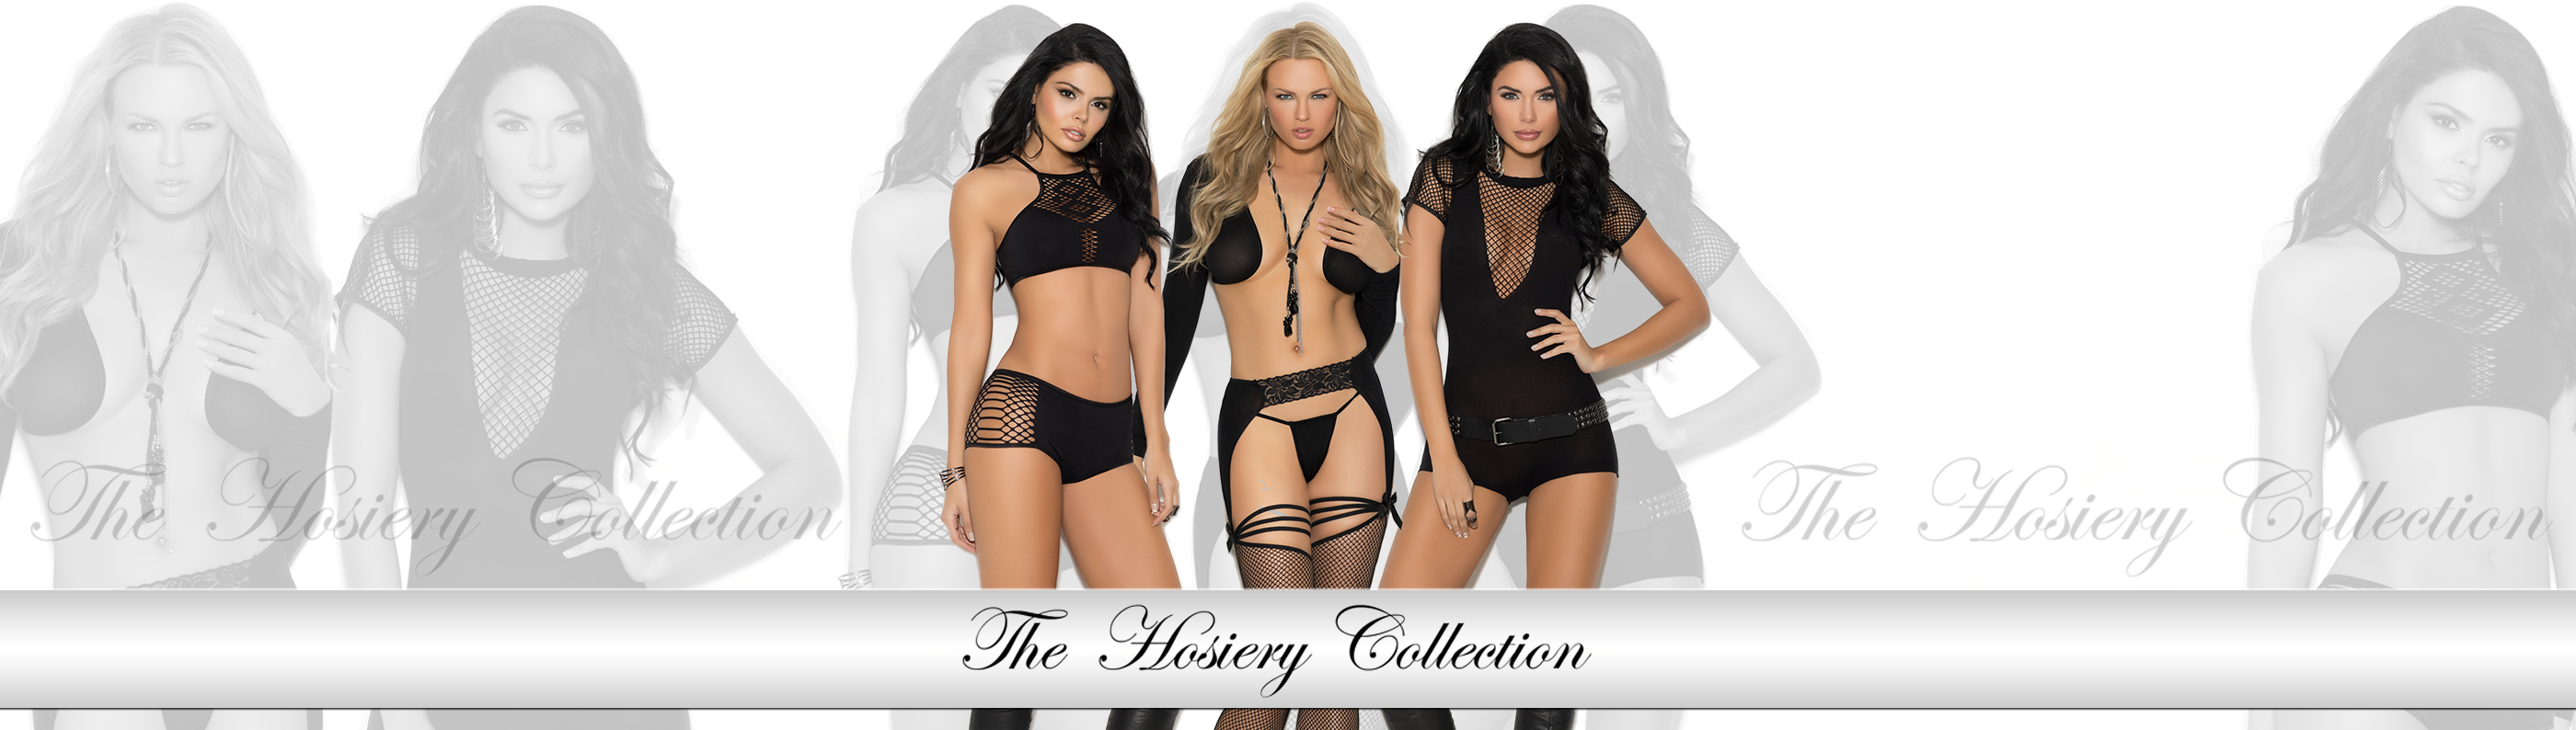 Elegant Moments is the leading wholesale lingerie manufacturer in the U.S.  and has no minimum order requirements. Perfect for start-up companies.